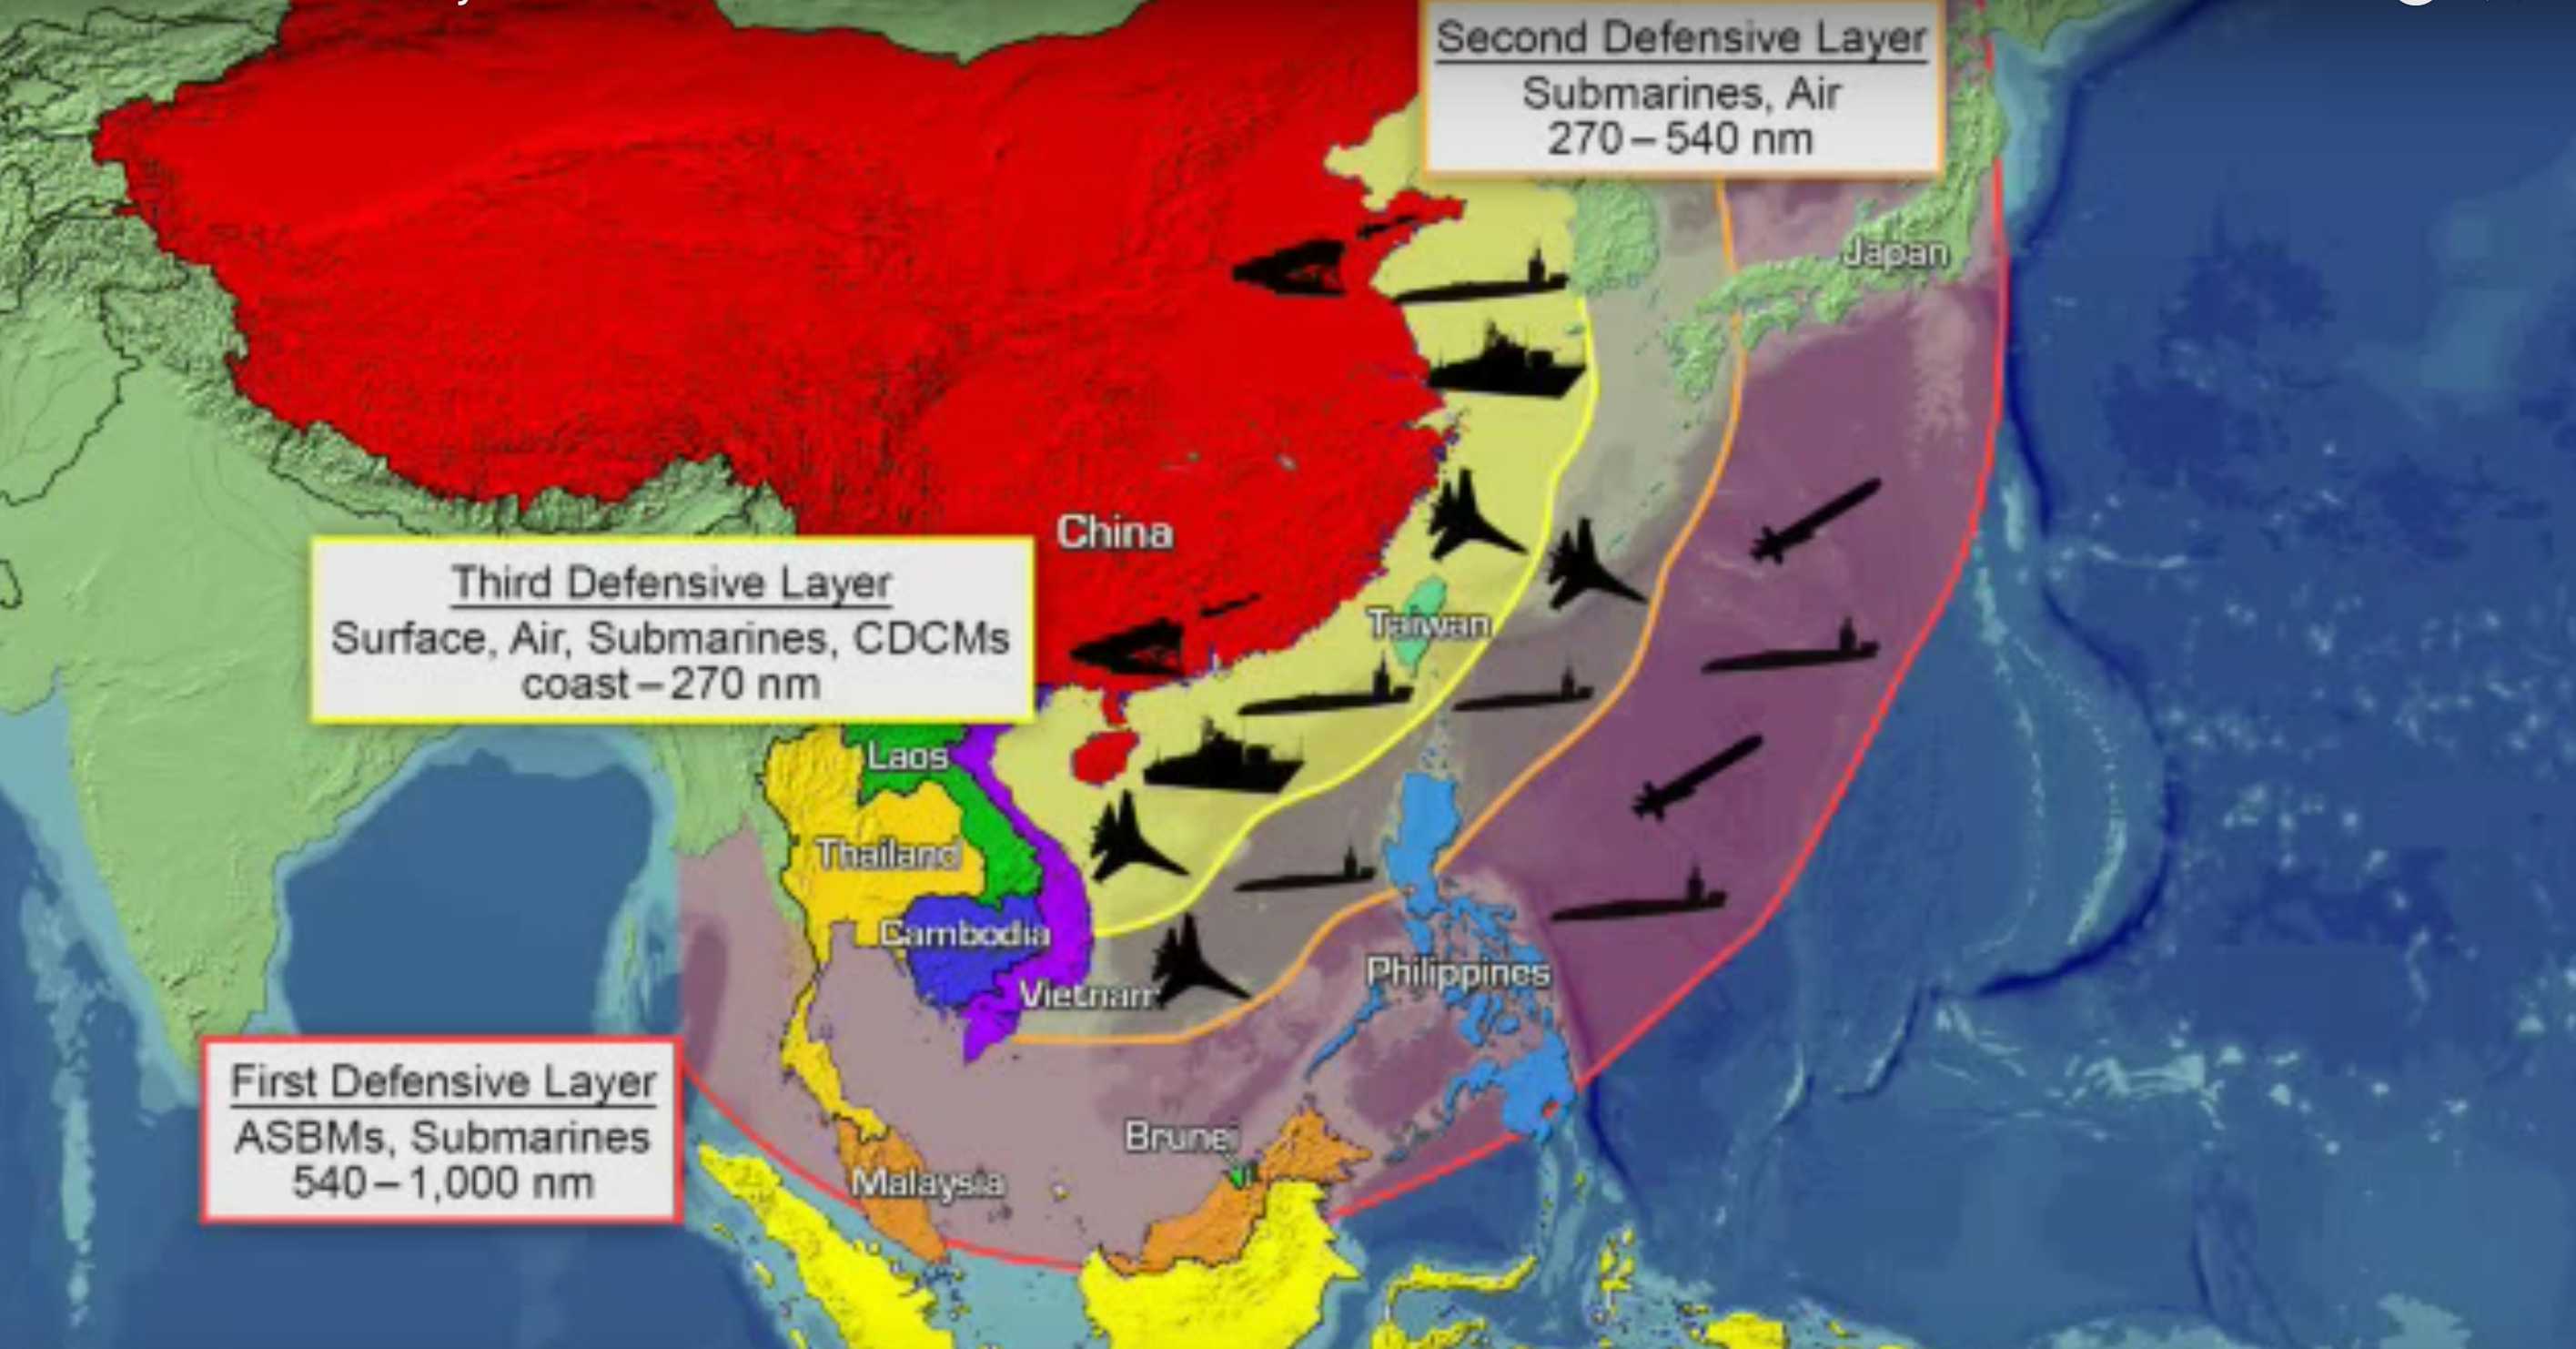 China's anti-access area denial defensive layers. Office of Naval Intelligence Image